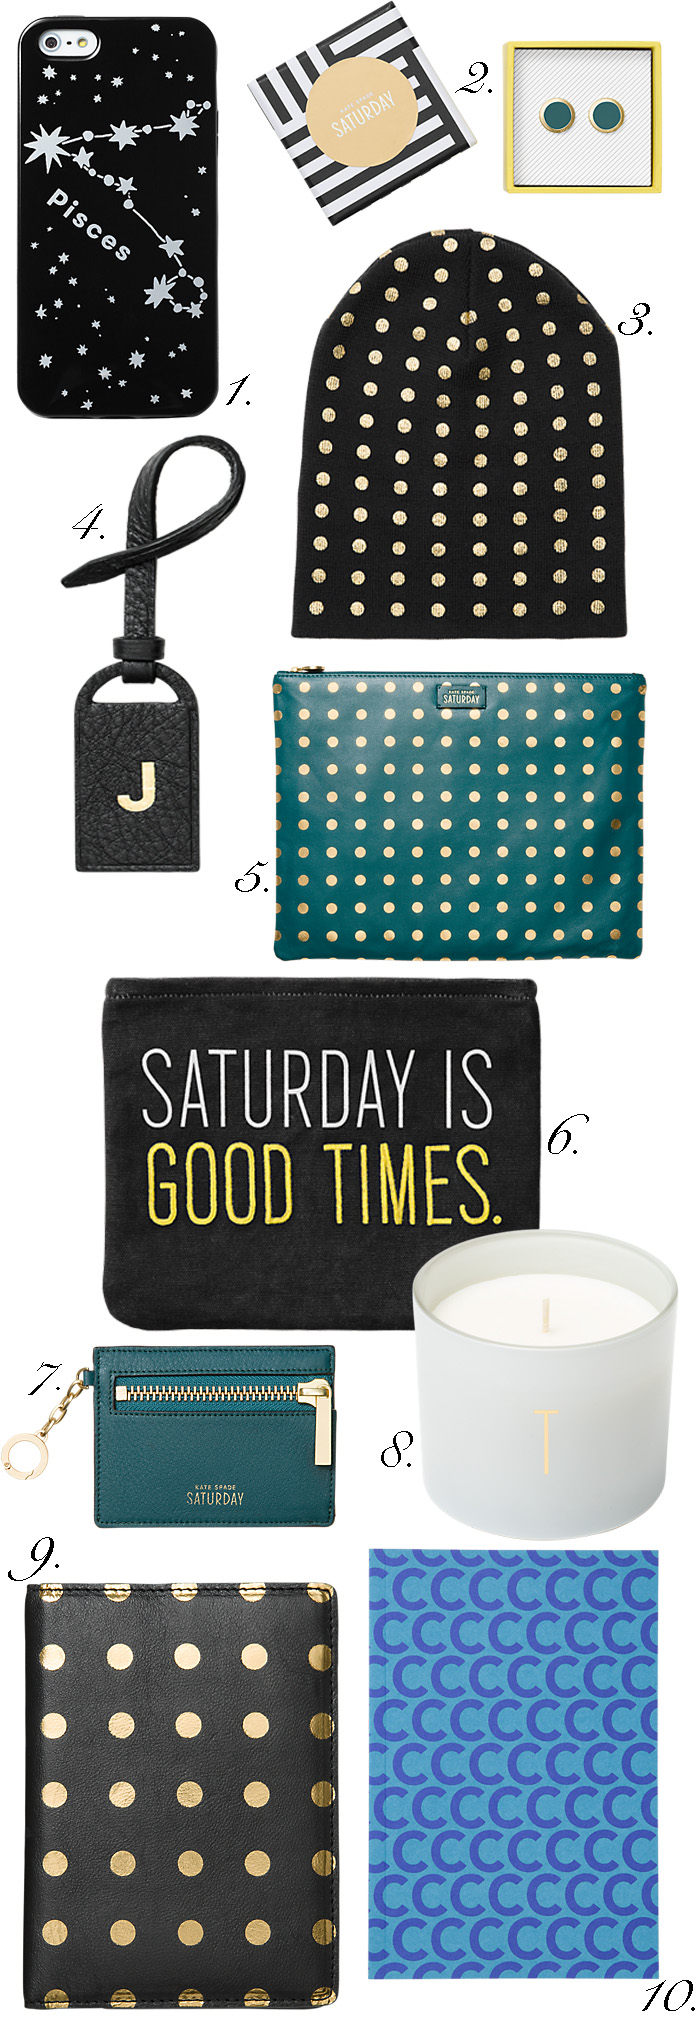 Kate Spade Saturday Gifts